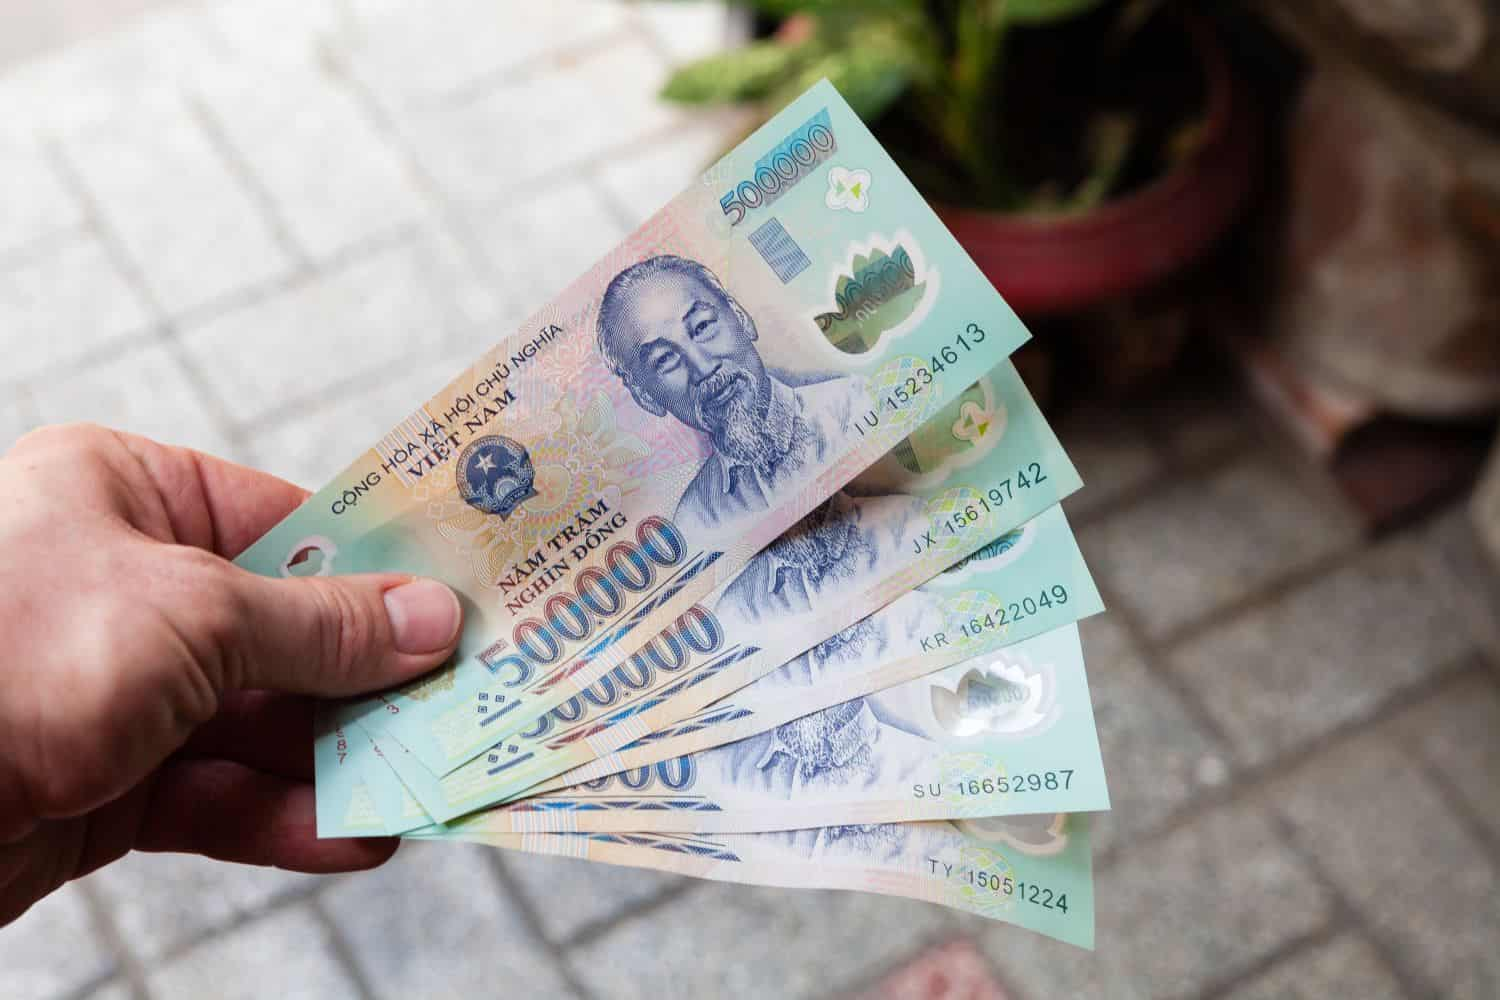 What is the currency of Vietnam